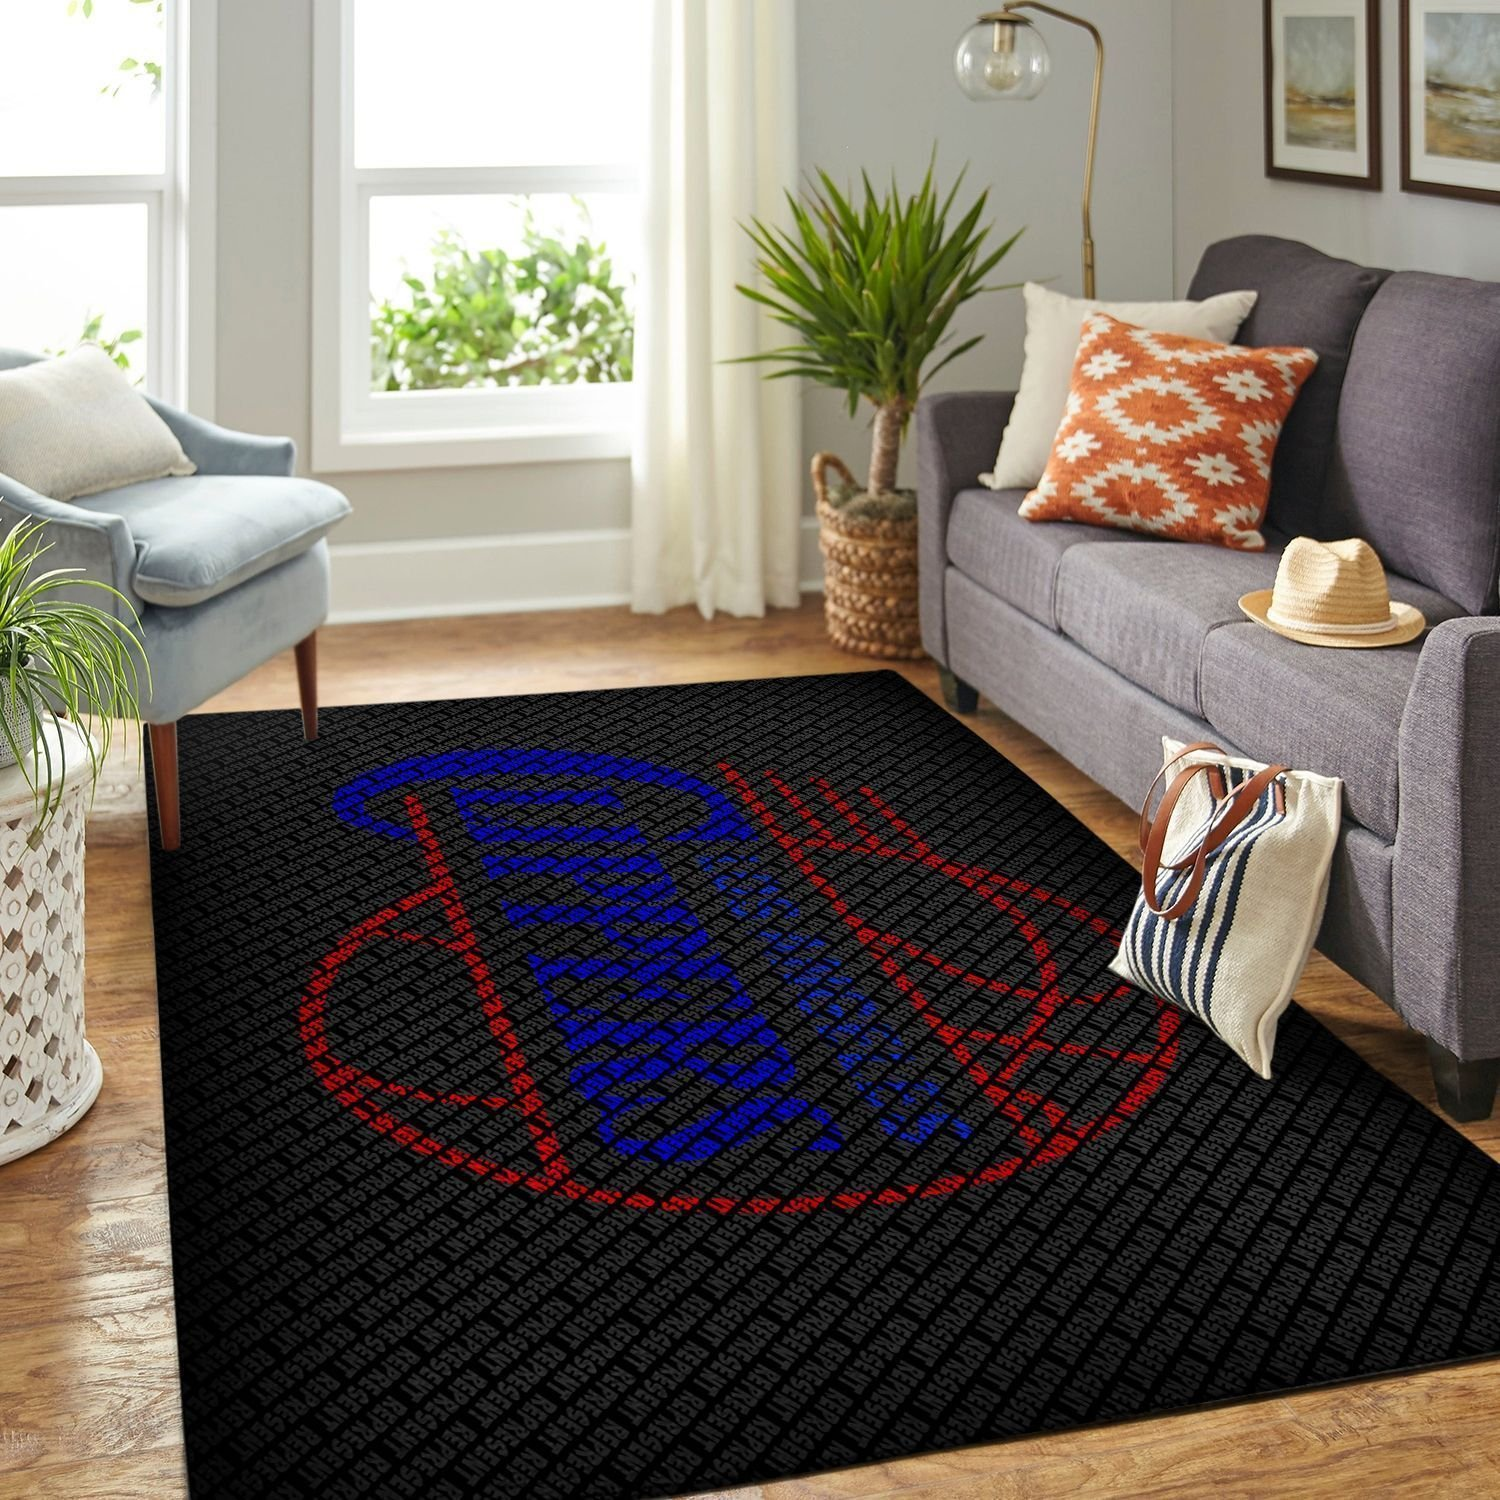 Amazon Los Angeles Clippers Living Room Area No3557 Rug